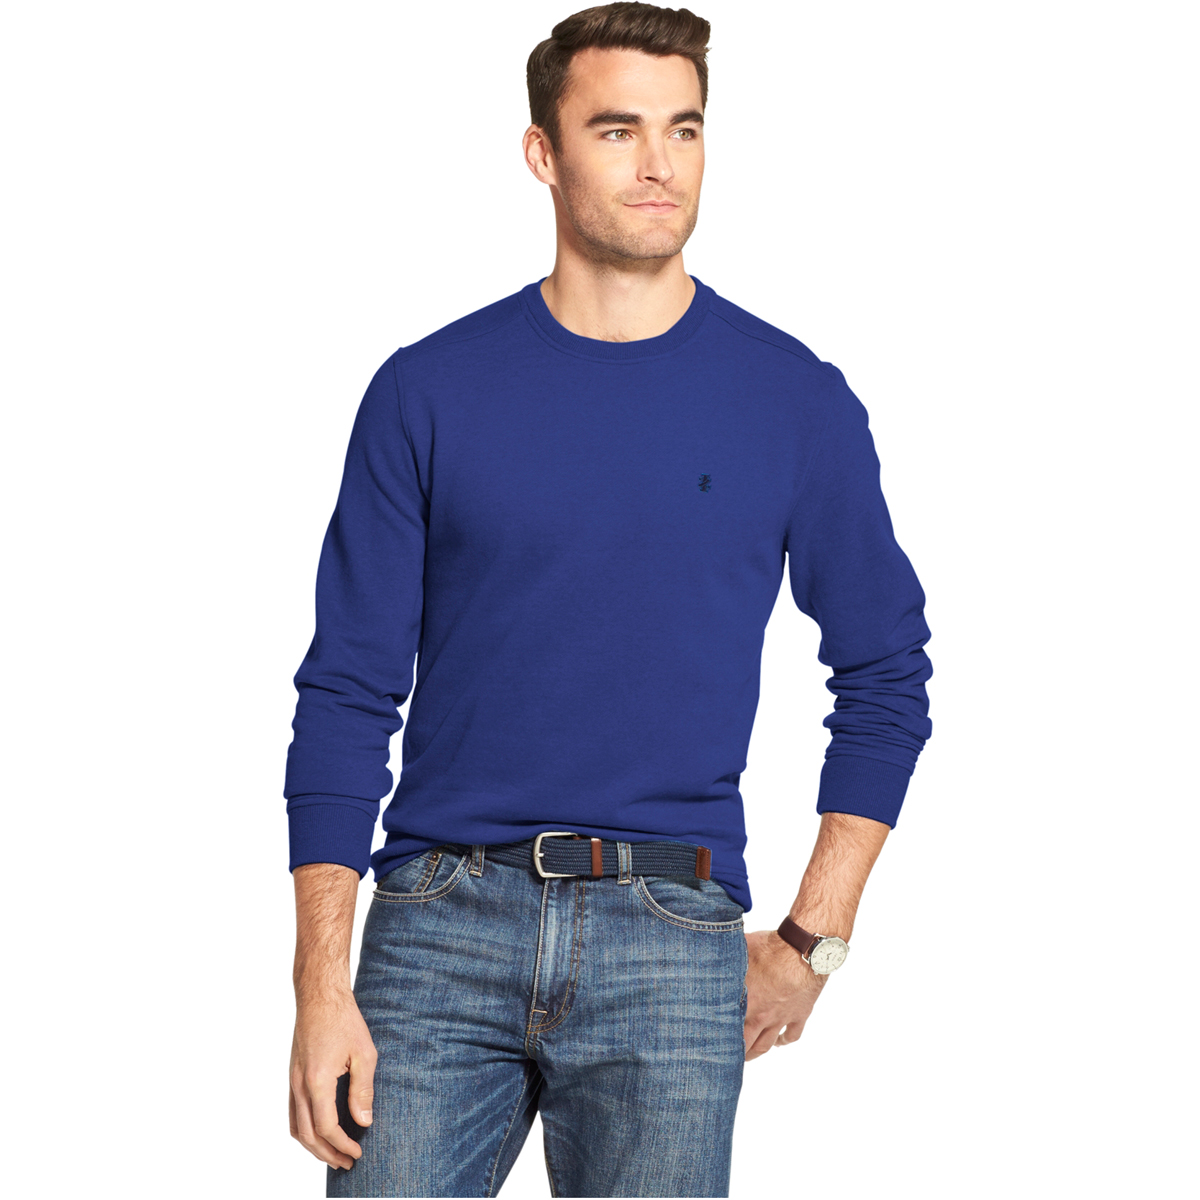 Izod Men's Long-Sleeve Supersoft Fleece Crewneck Sweater - Blue, M